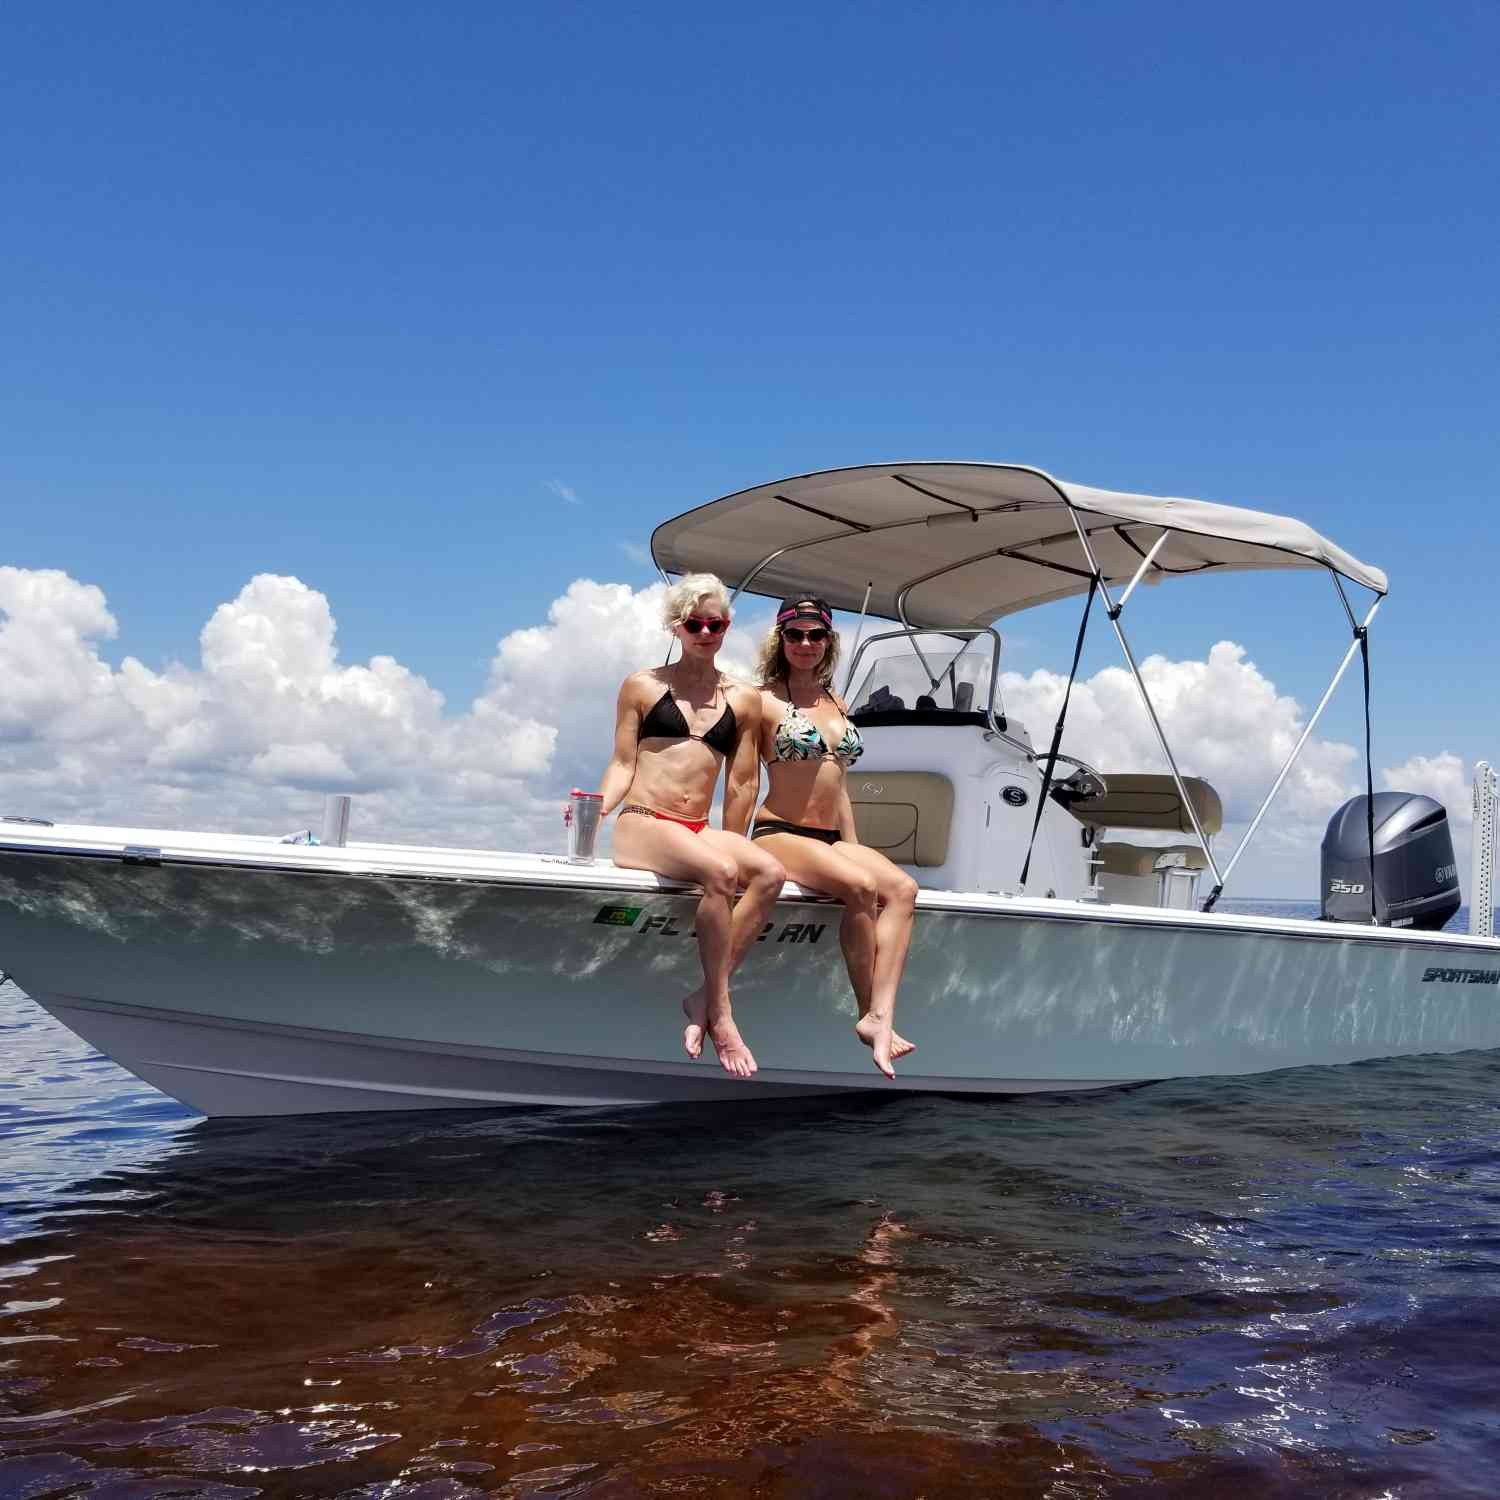 Title: Required Sportsman Accessories - On board their Sportsman Masters 247 Bay Boat - Location: St. Mark's, Florida. Participating in the Photo Contest #SportsmanAugust2018